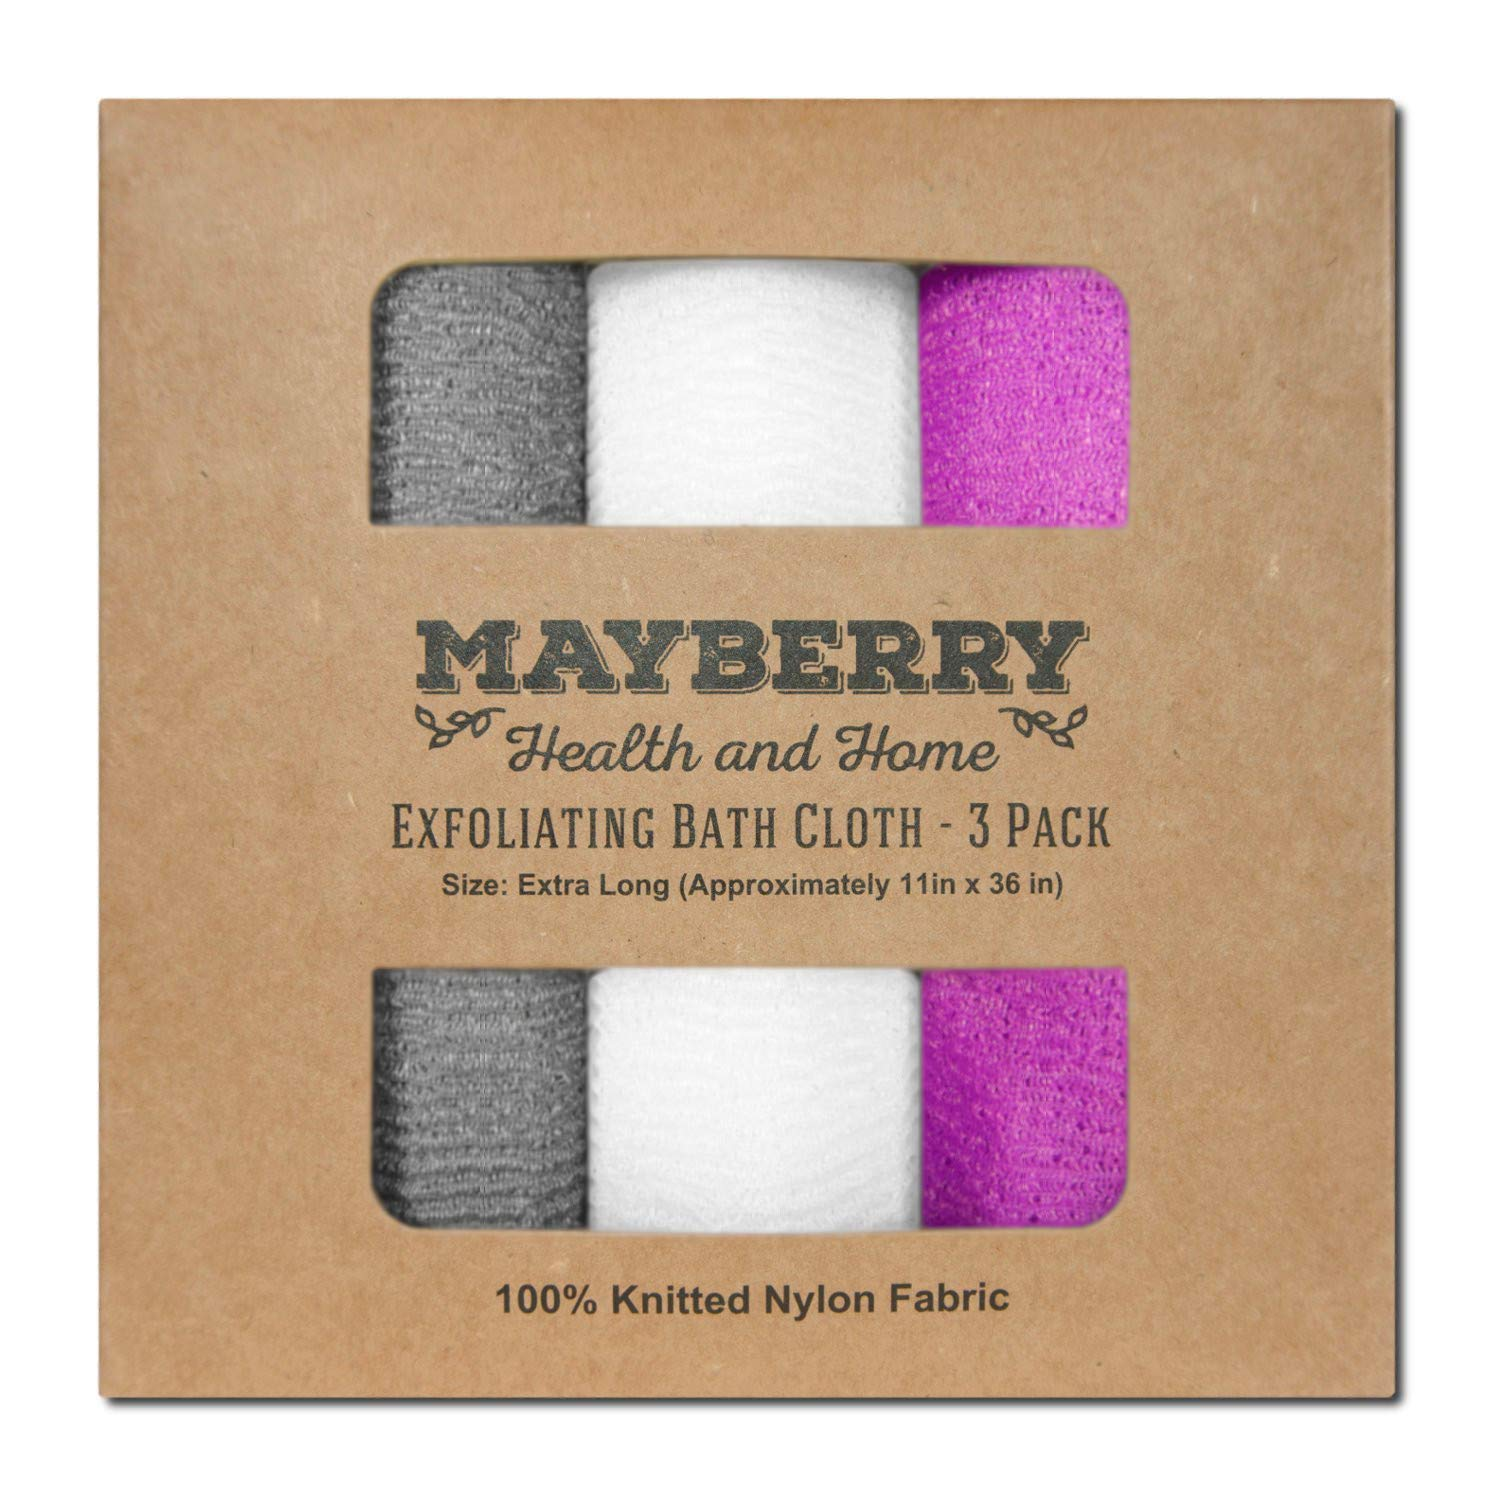 Extra Long (36 Inches) Exfoliating Bath Cloth (3 Pack) Gray, White, and Magenta Nylon Bath Towel, Stitching on All Sides for Added Durability by Mayberry Health and Home